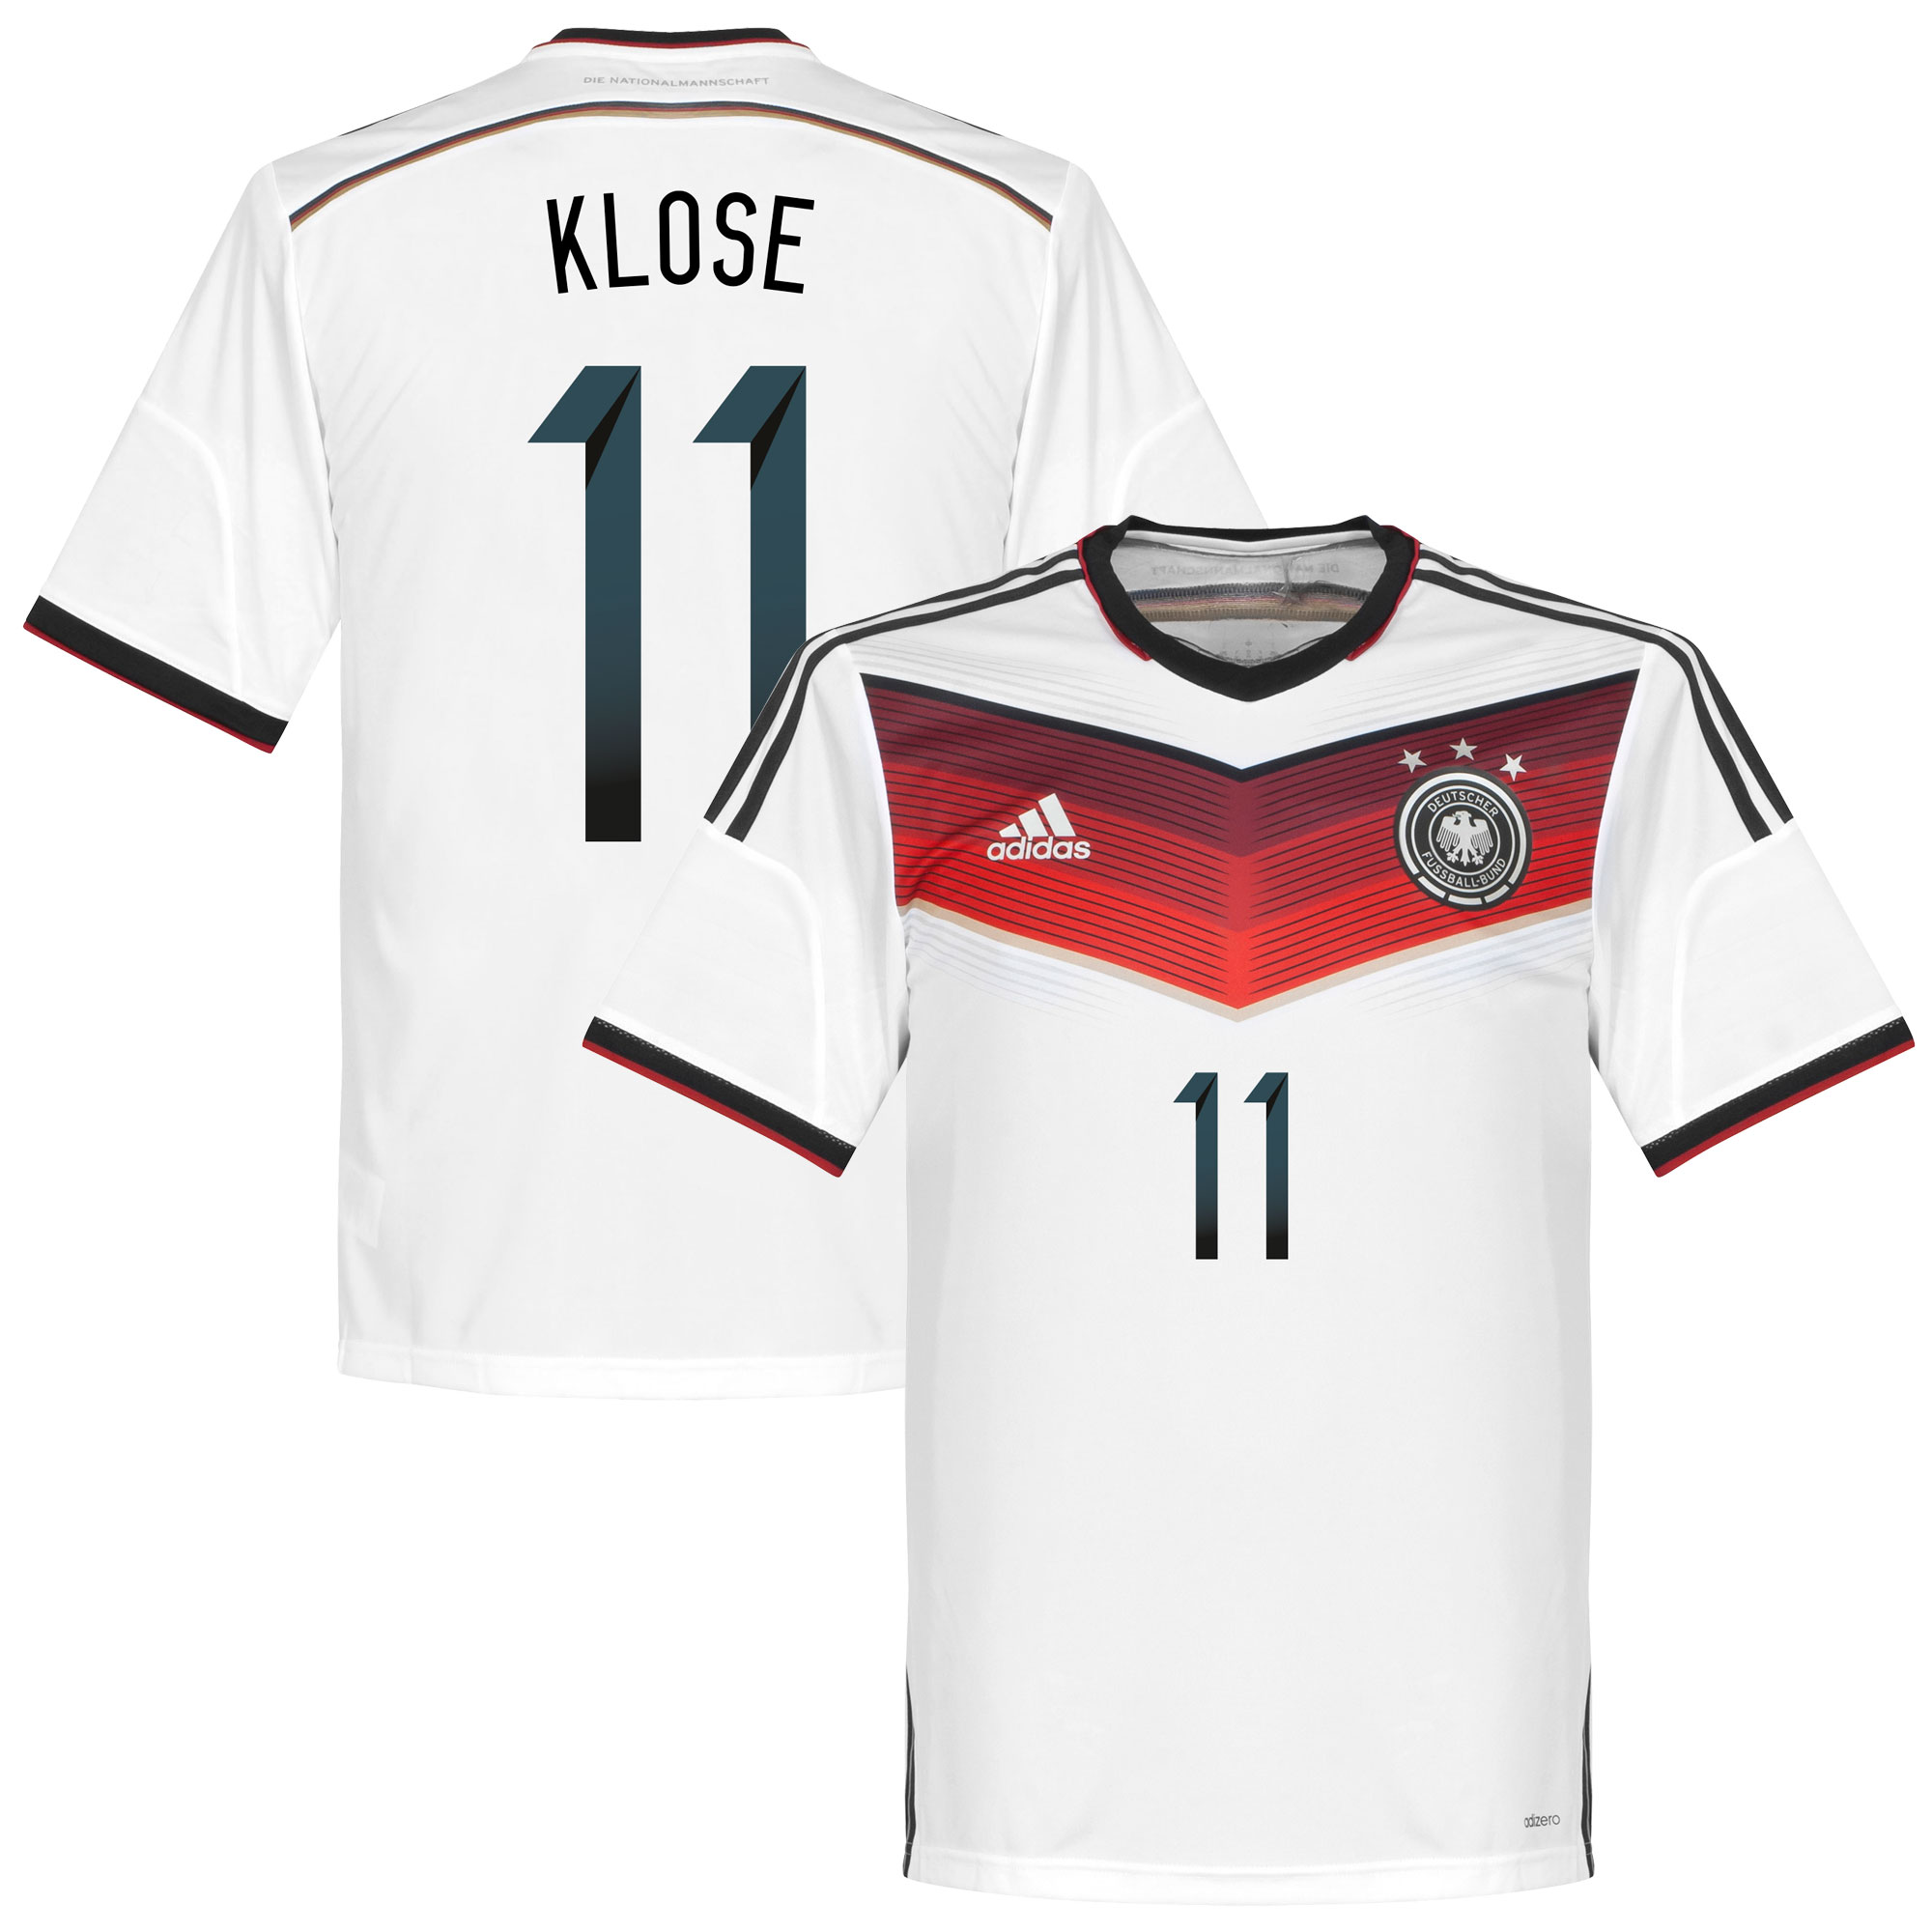 Germany Home Klose 11 Authentic Shirt 2014 2015 - 50